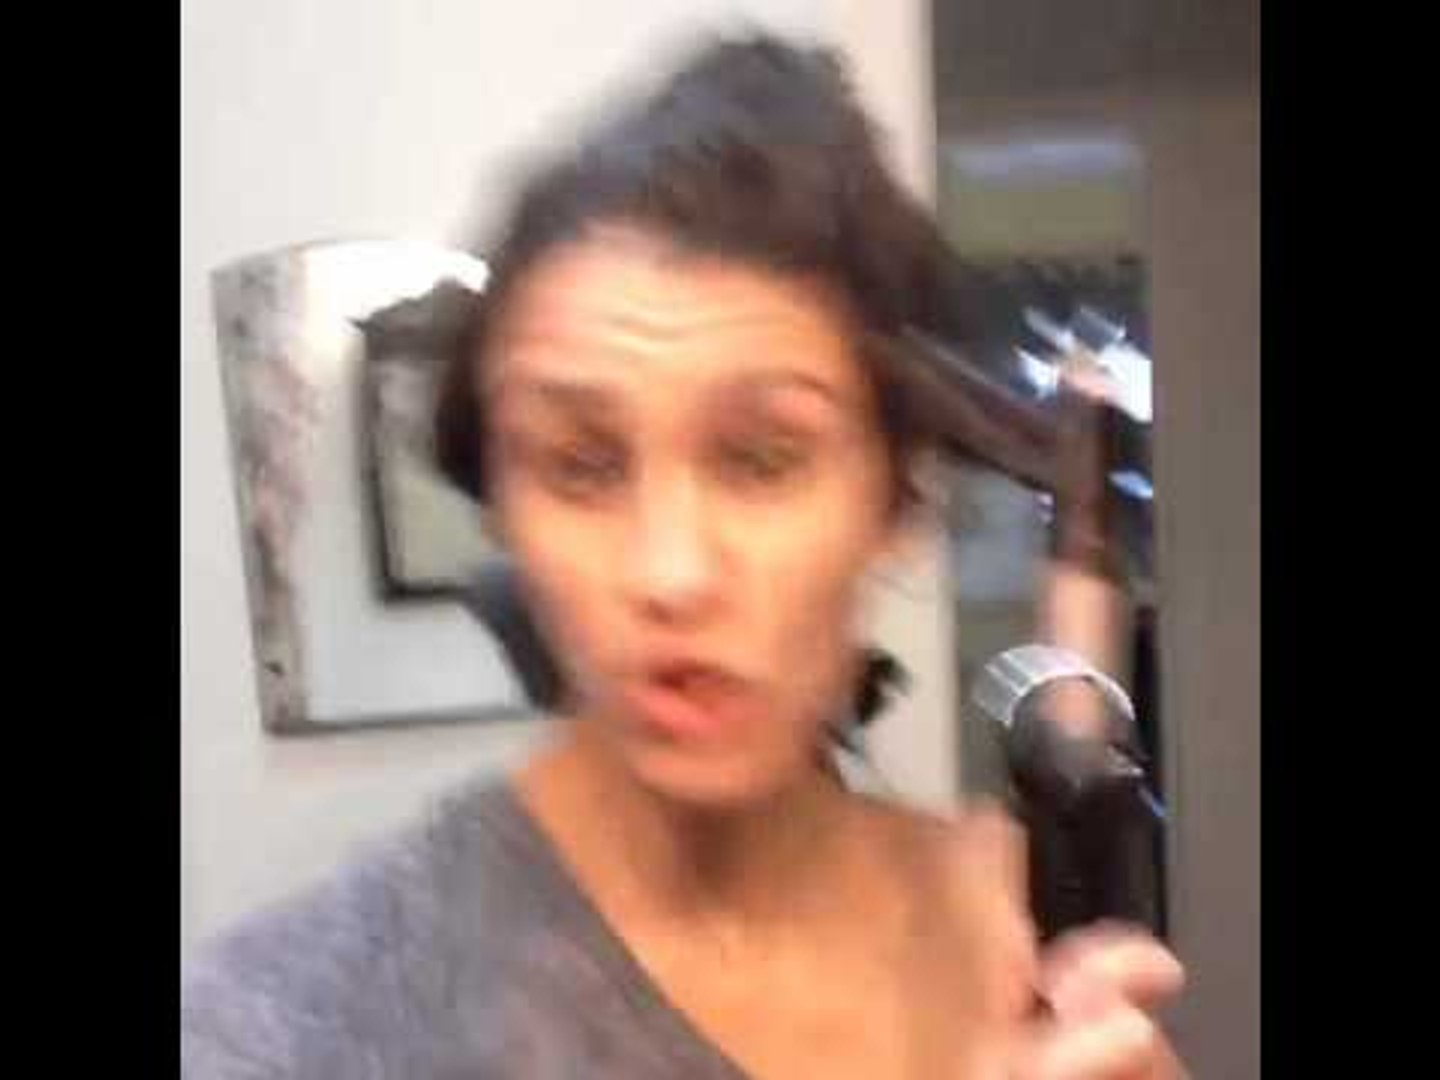 Curling your hair & listening to rap may turn you into Shirley Temple: Brittany Furlan's Vi